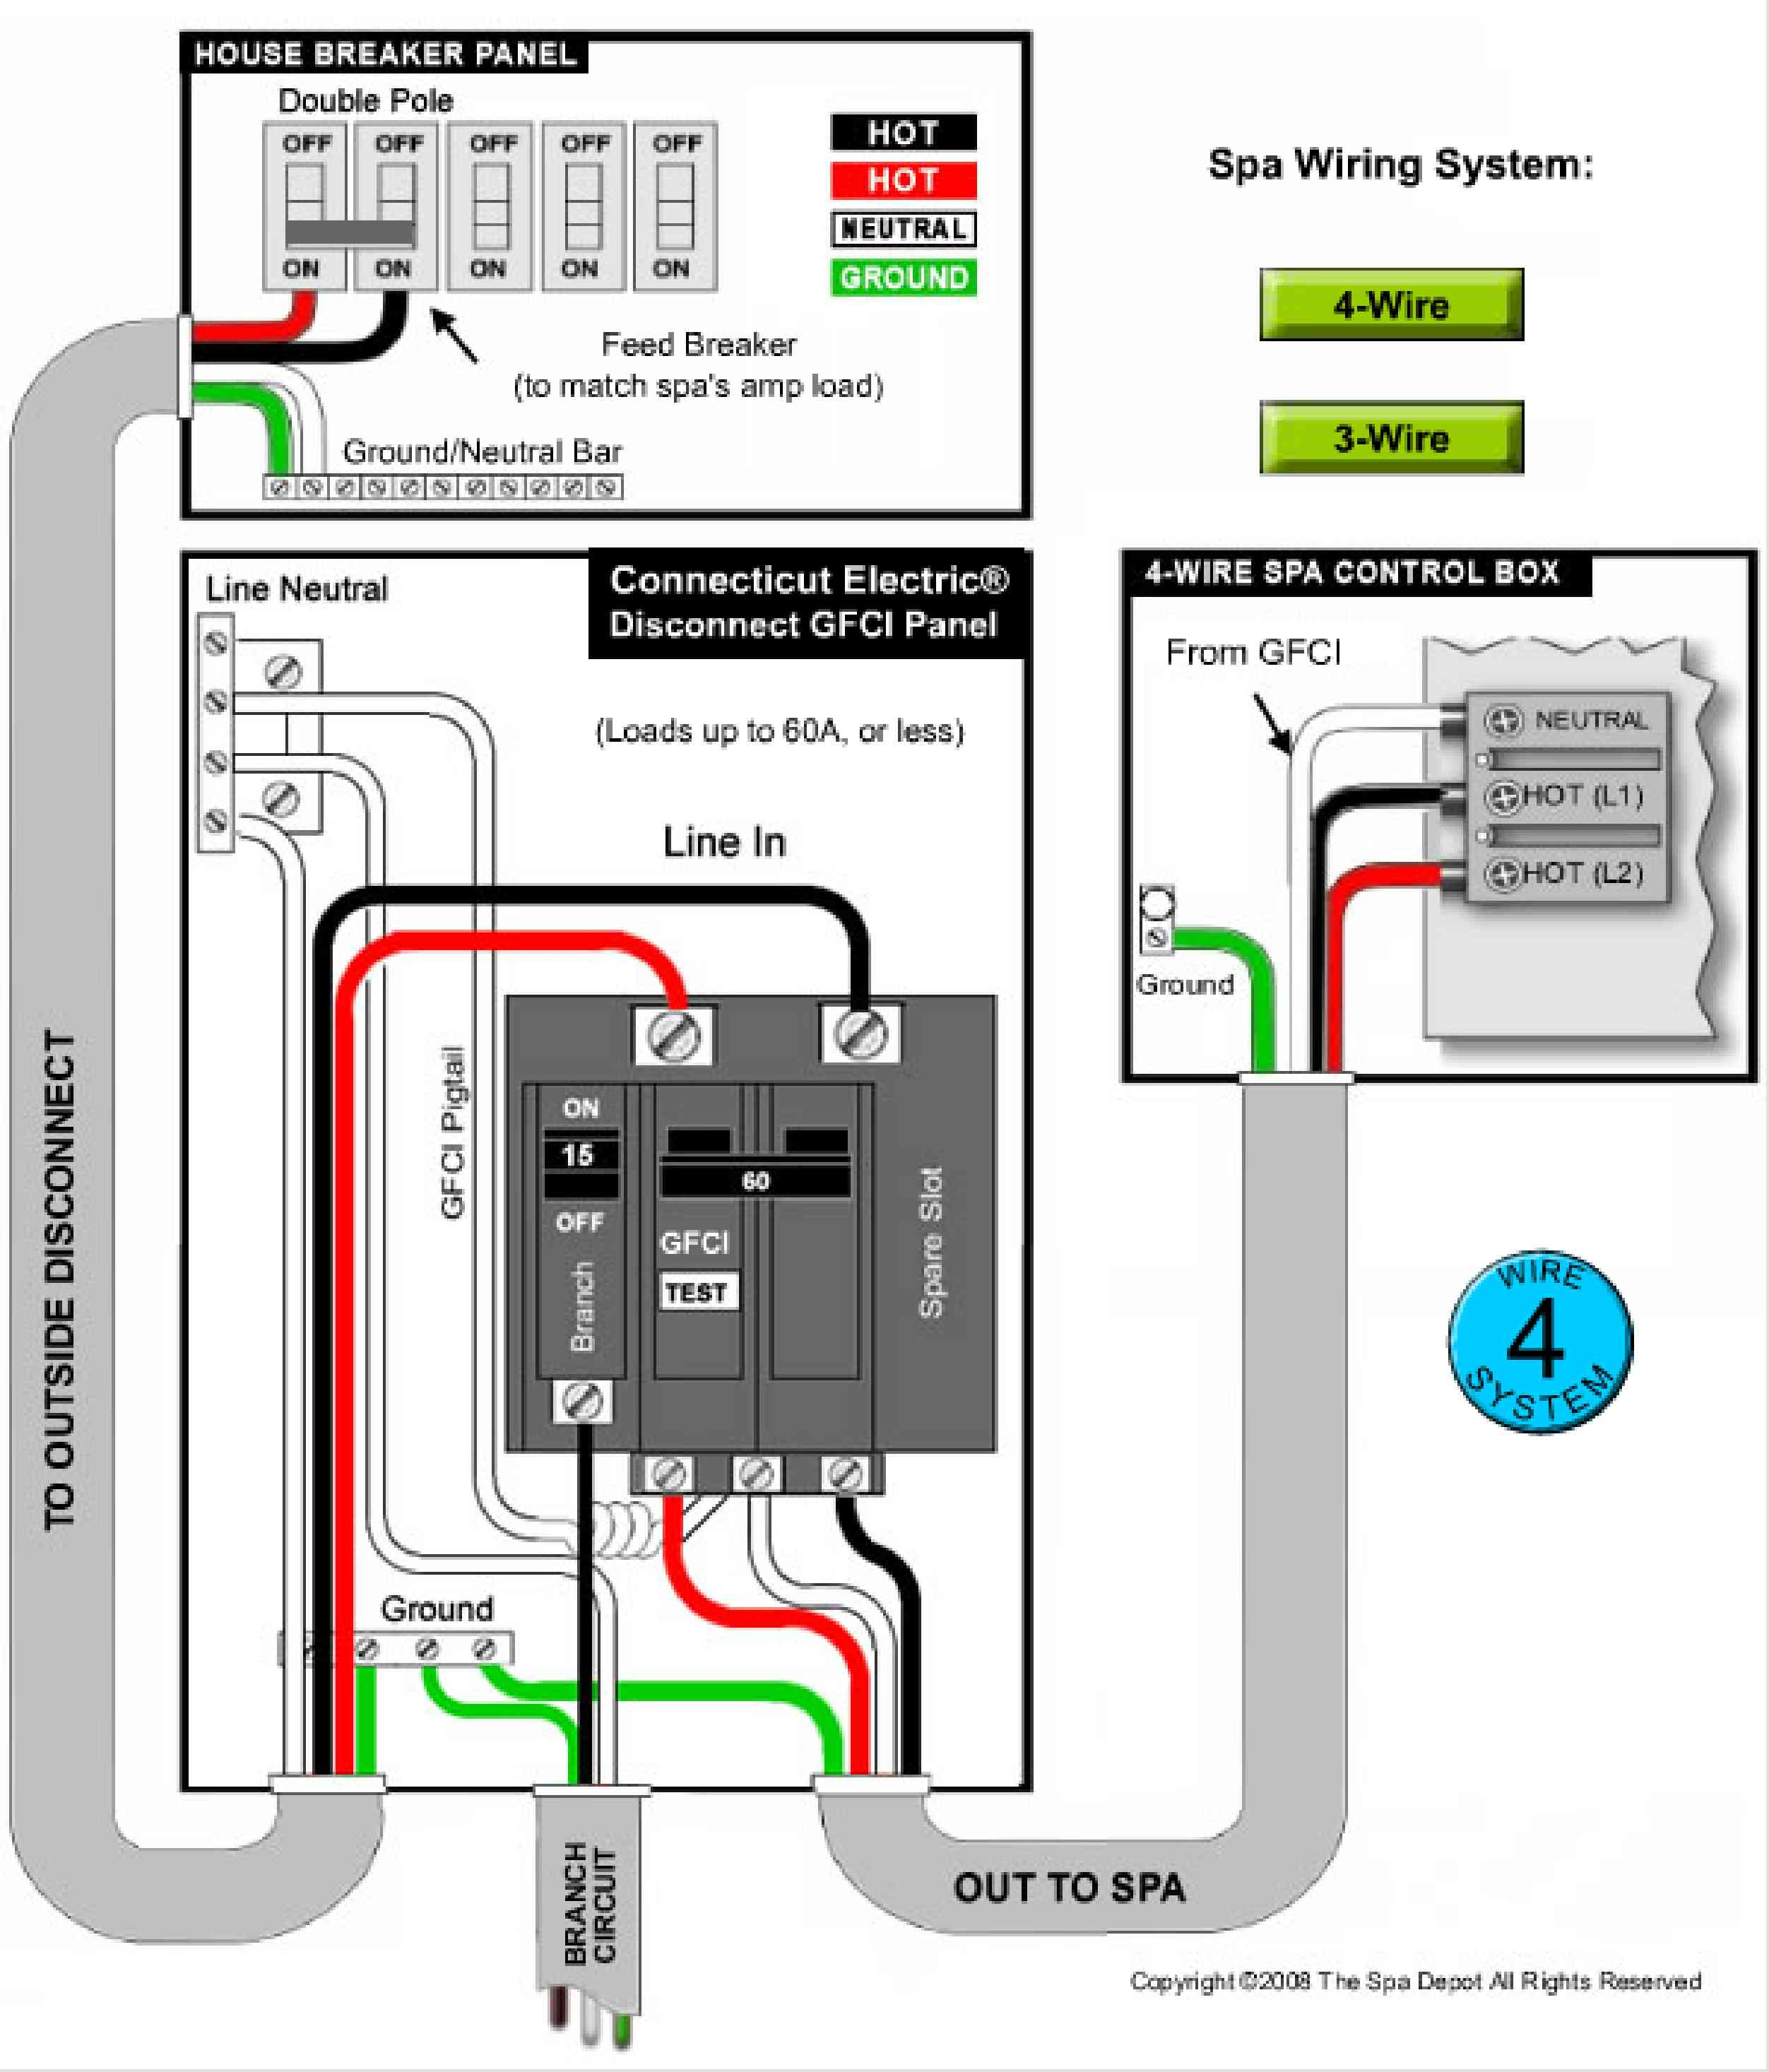 pole gfci breaker wiring diagram 3 phase induction motor 480v 3 rh sellfie co